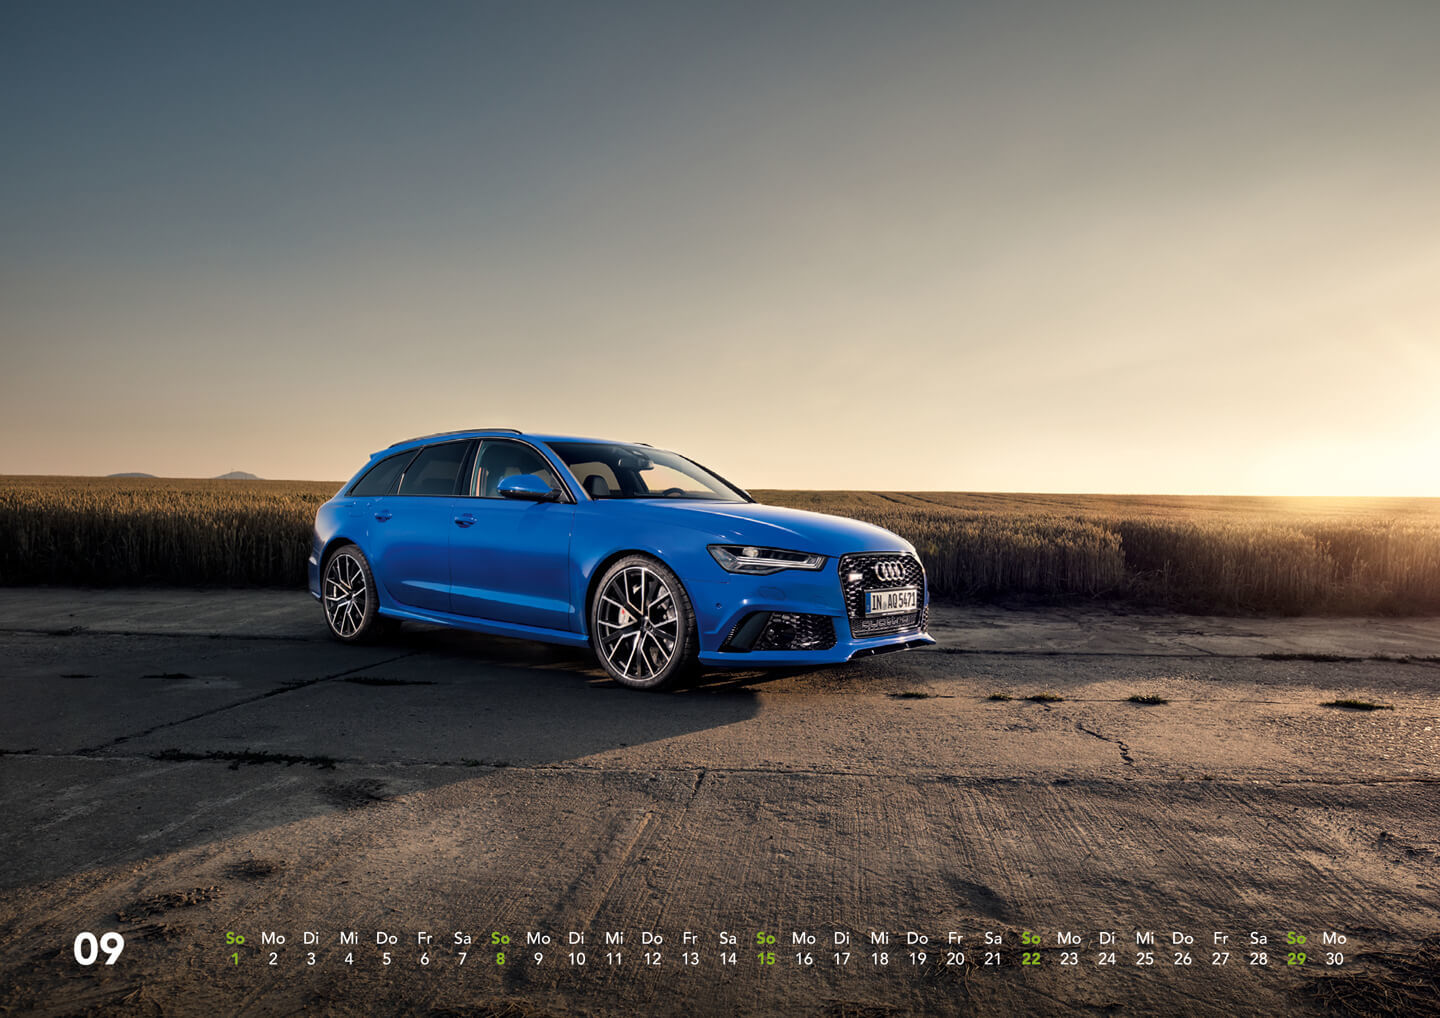 audi kalender 2019 din a2 audi s rs r8 auto. Black Bedroom Furniture Sets. Home Design Ideas